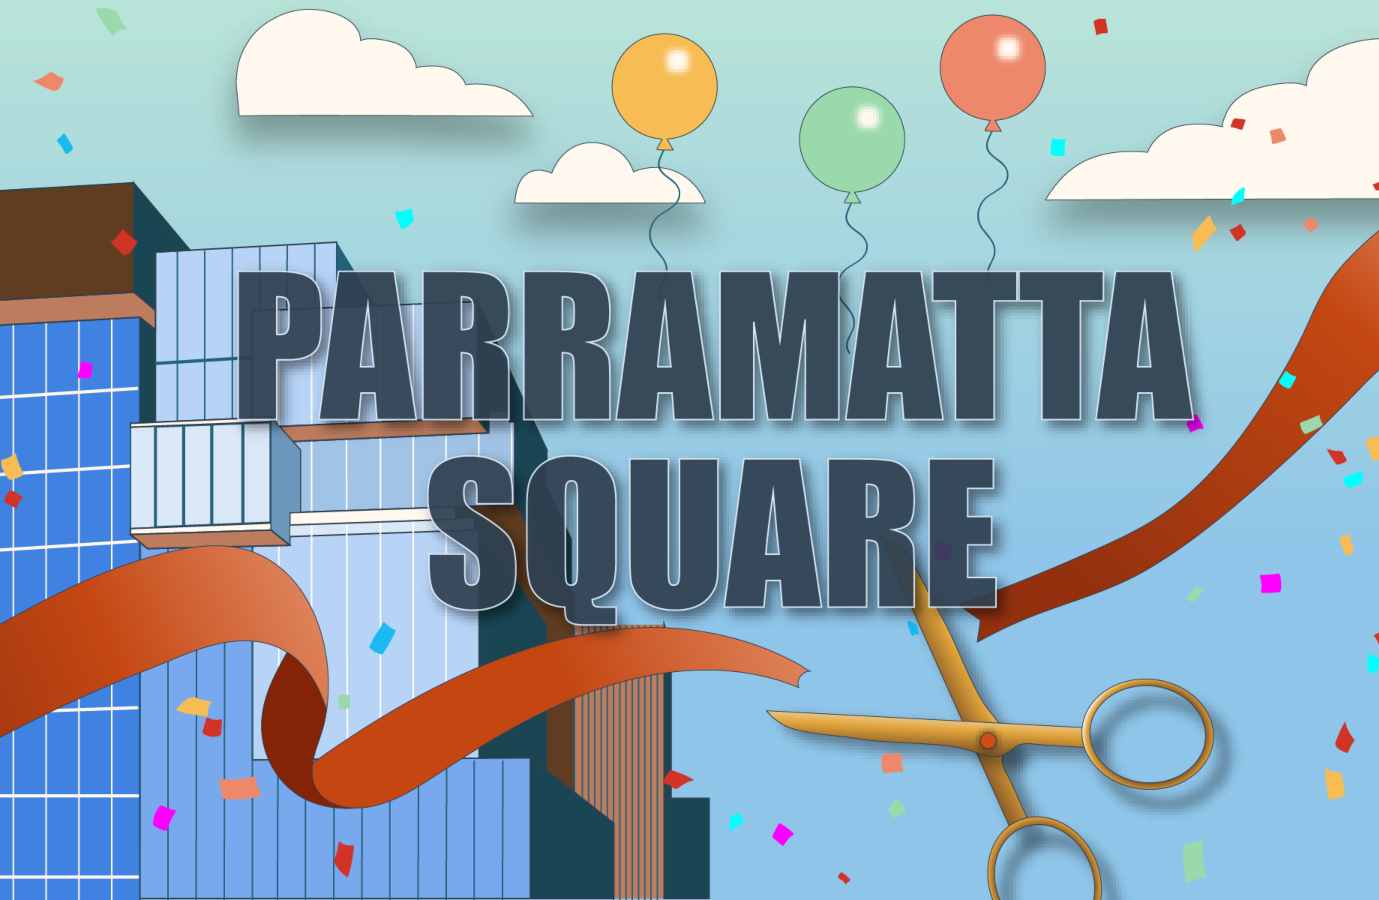 parramatta-sq-blog-artwork-tile.png